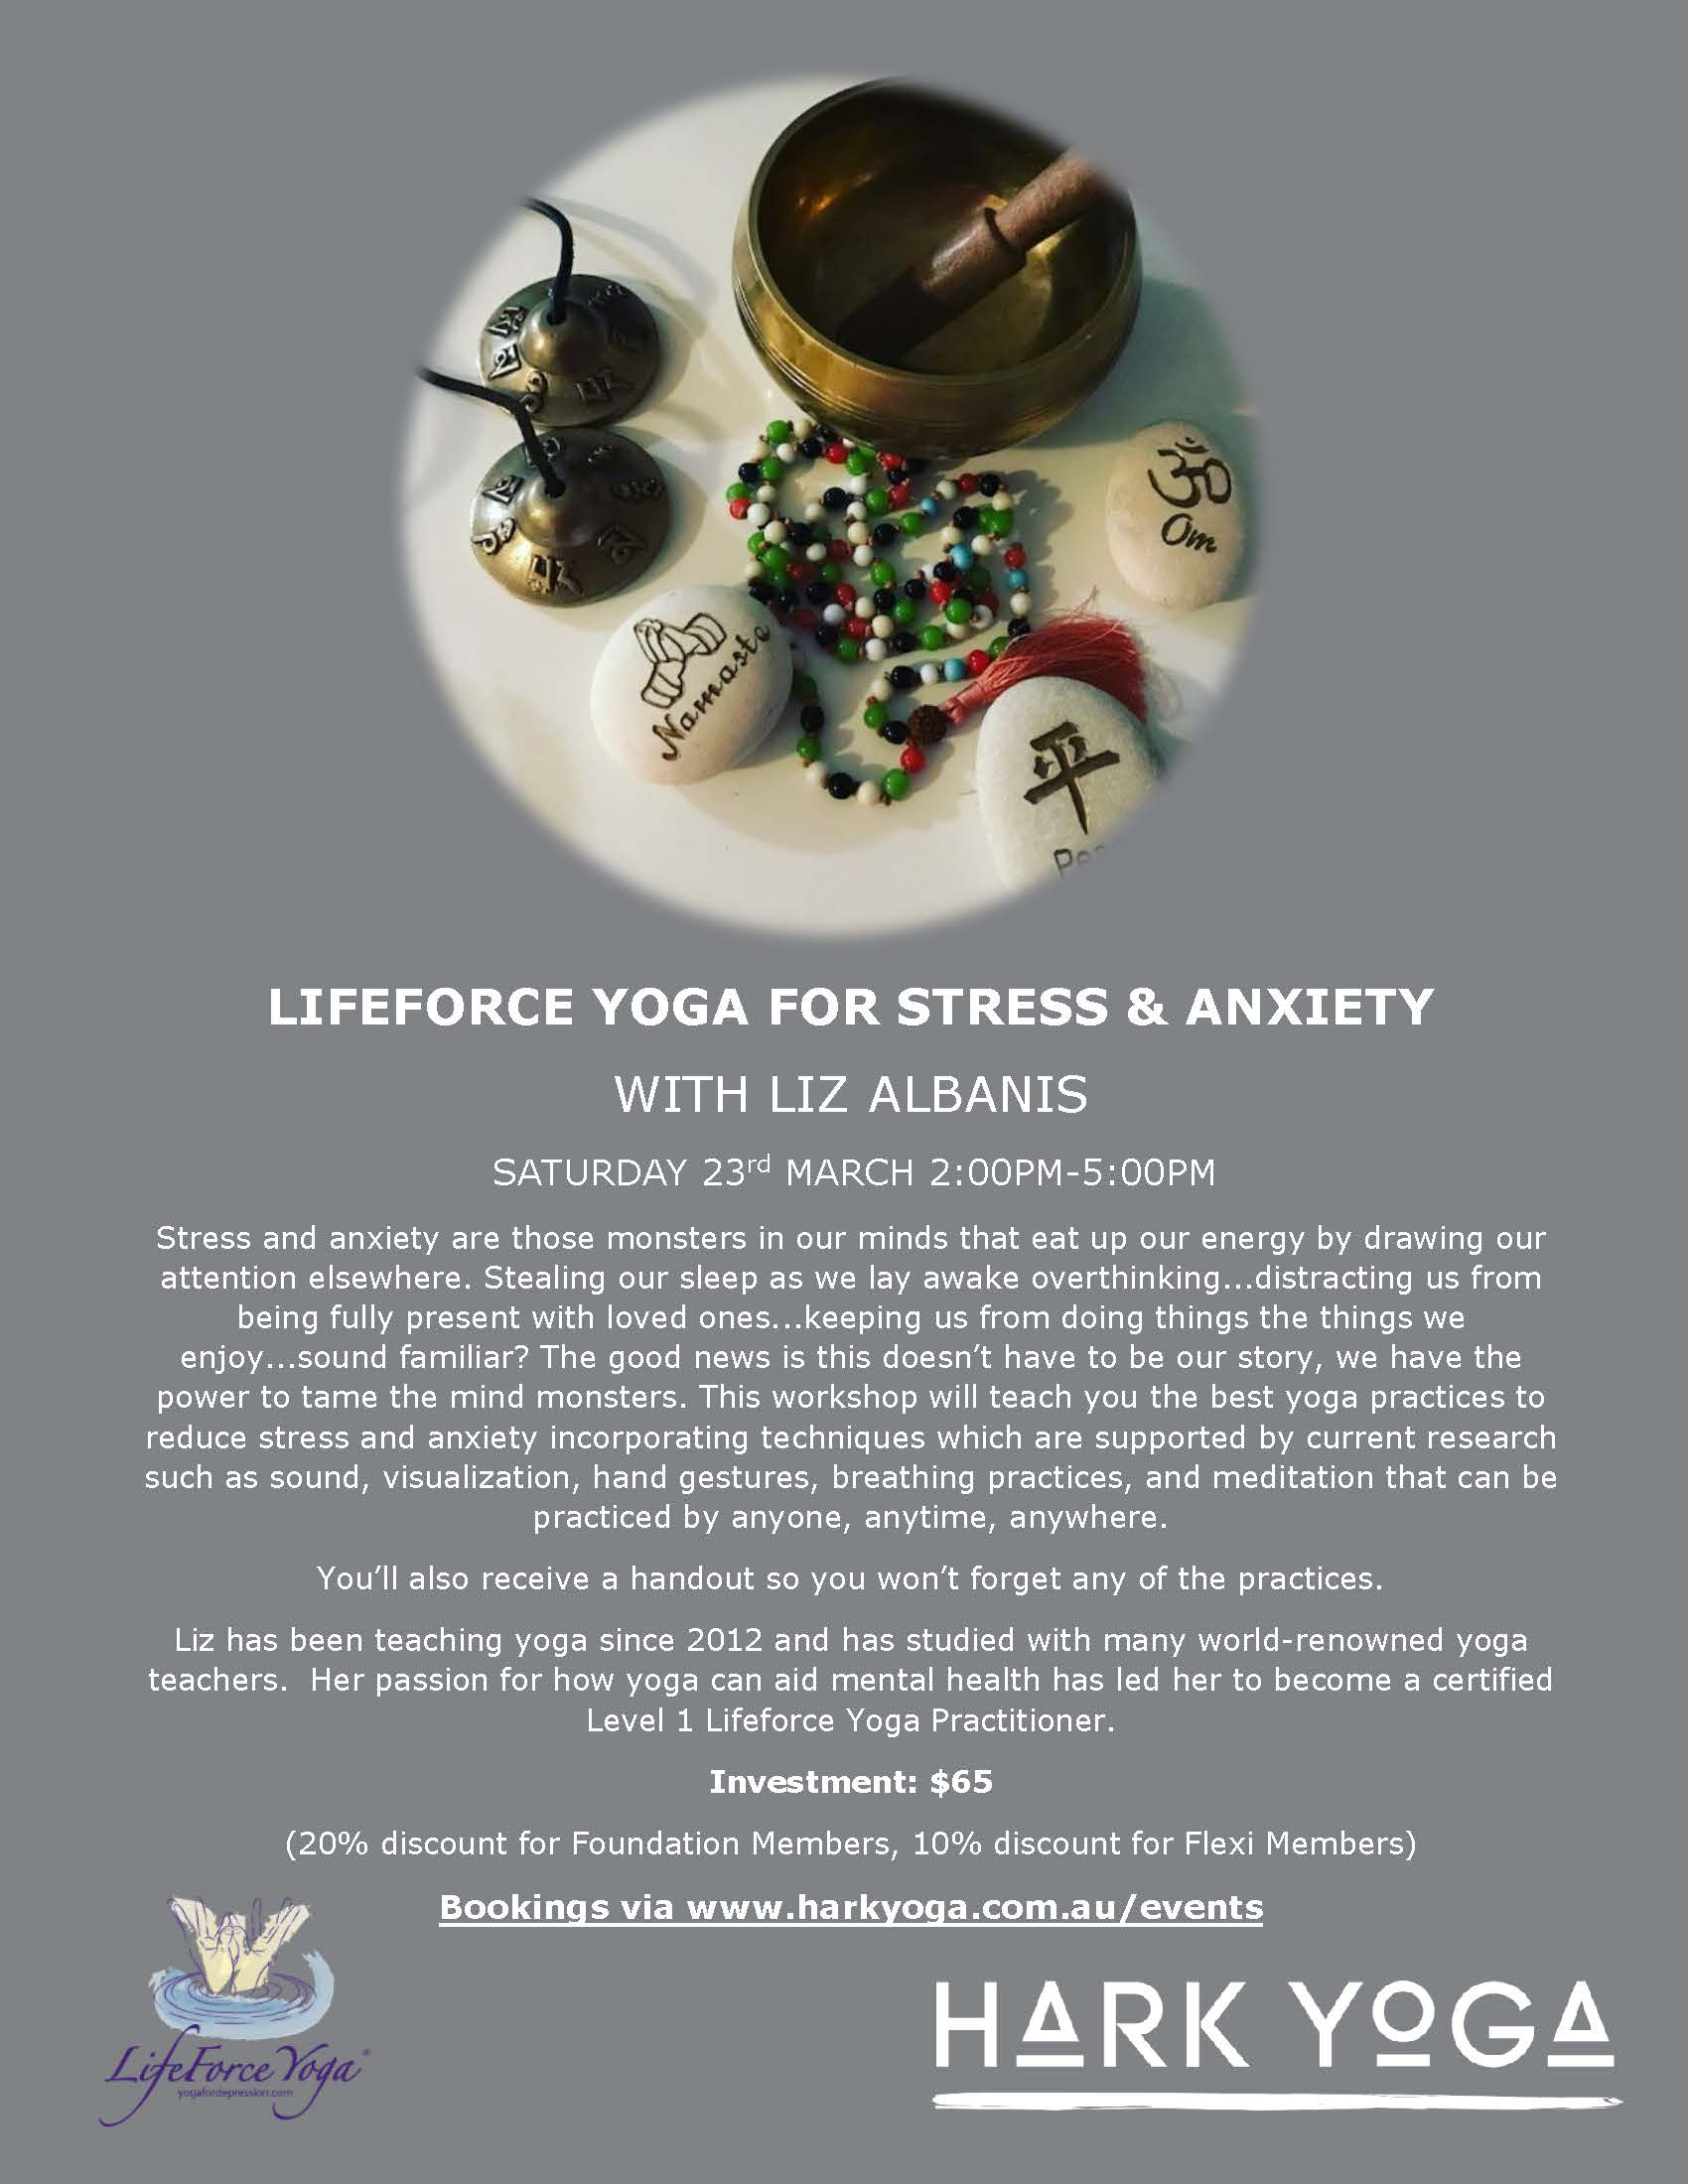 Lifeforce Yoga for Stress and Anxiety Poster.jpg